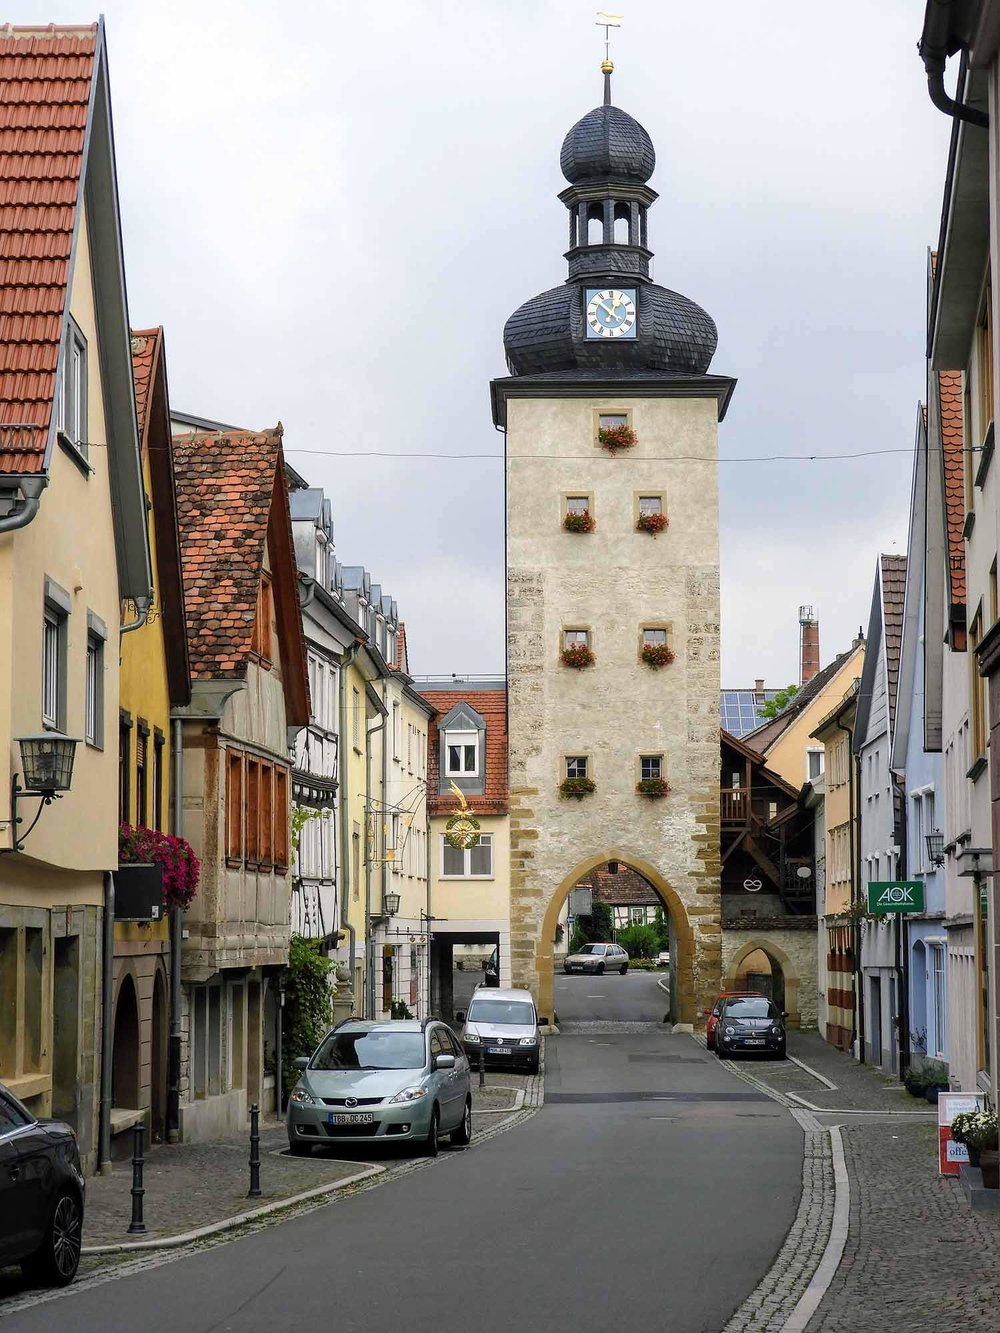 germany-Weikersheim-town-tower-watch.jpg